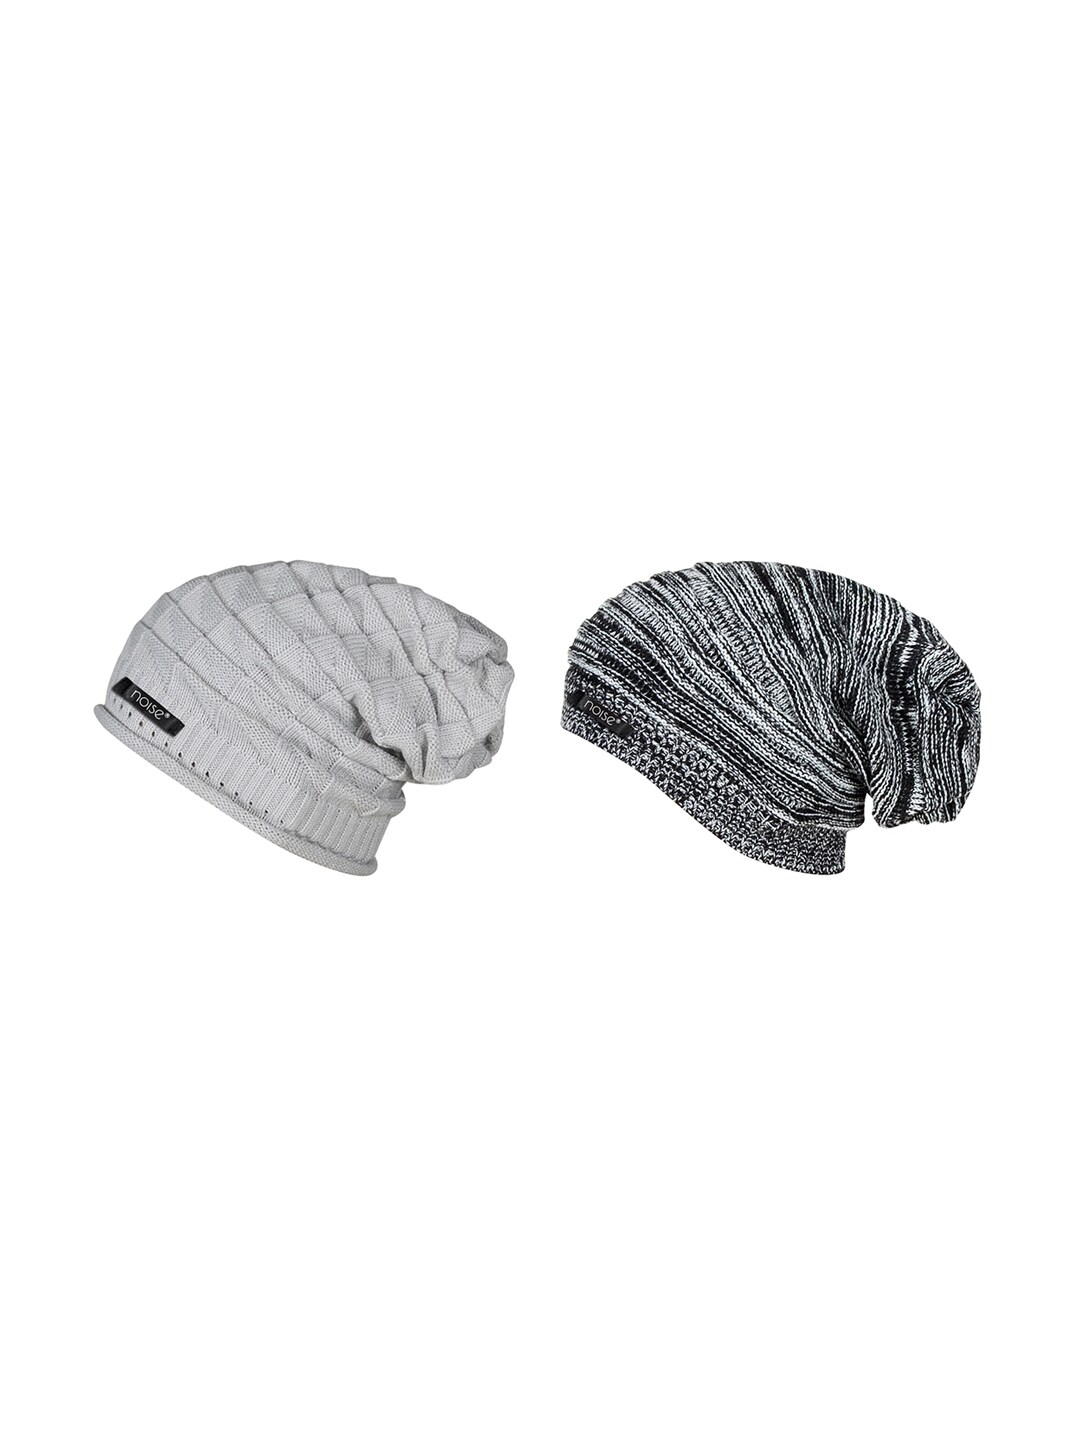 3c6e640ae77 Compact Caps - Buy Compact Caps online in India